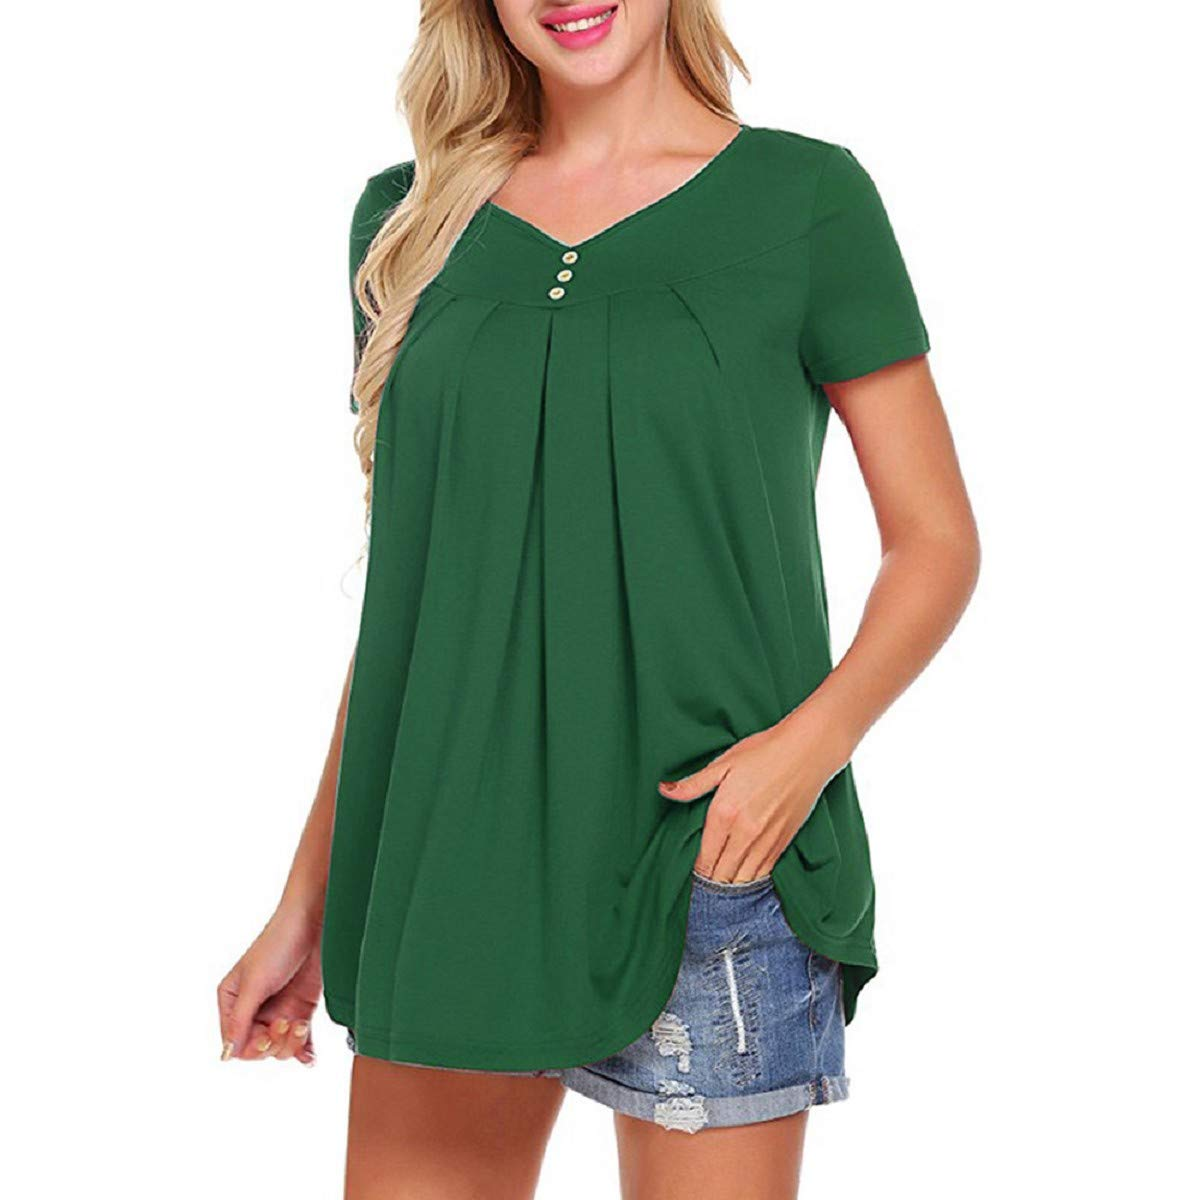 OTINICE Women Summer Tee Shirts V Neck Short Sleeve Button Up Loose Tunic Tops Blouse Green